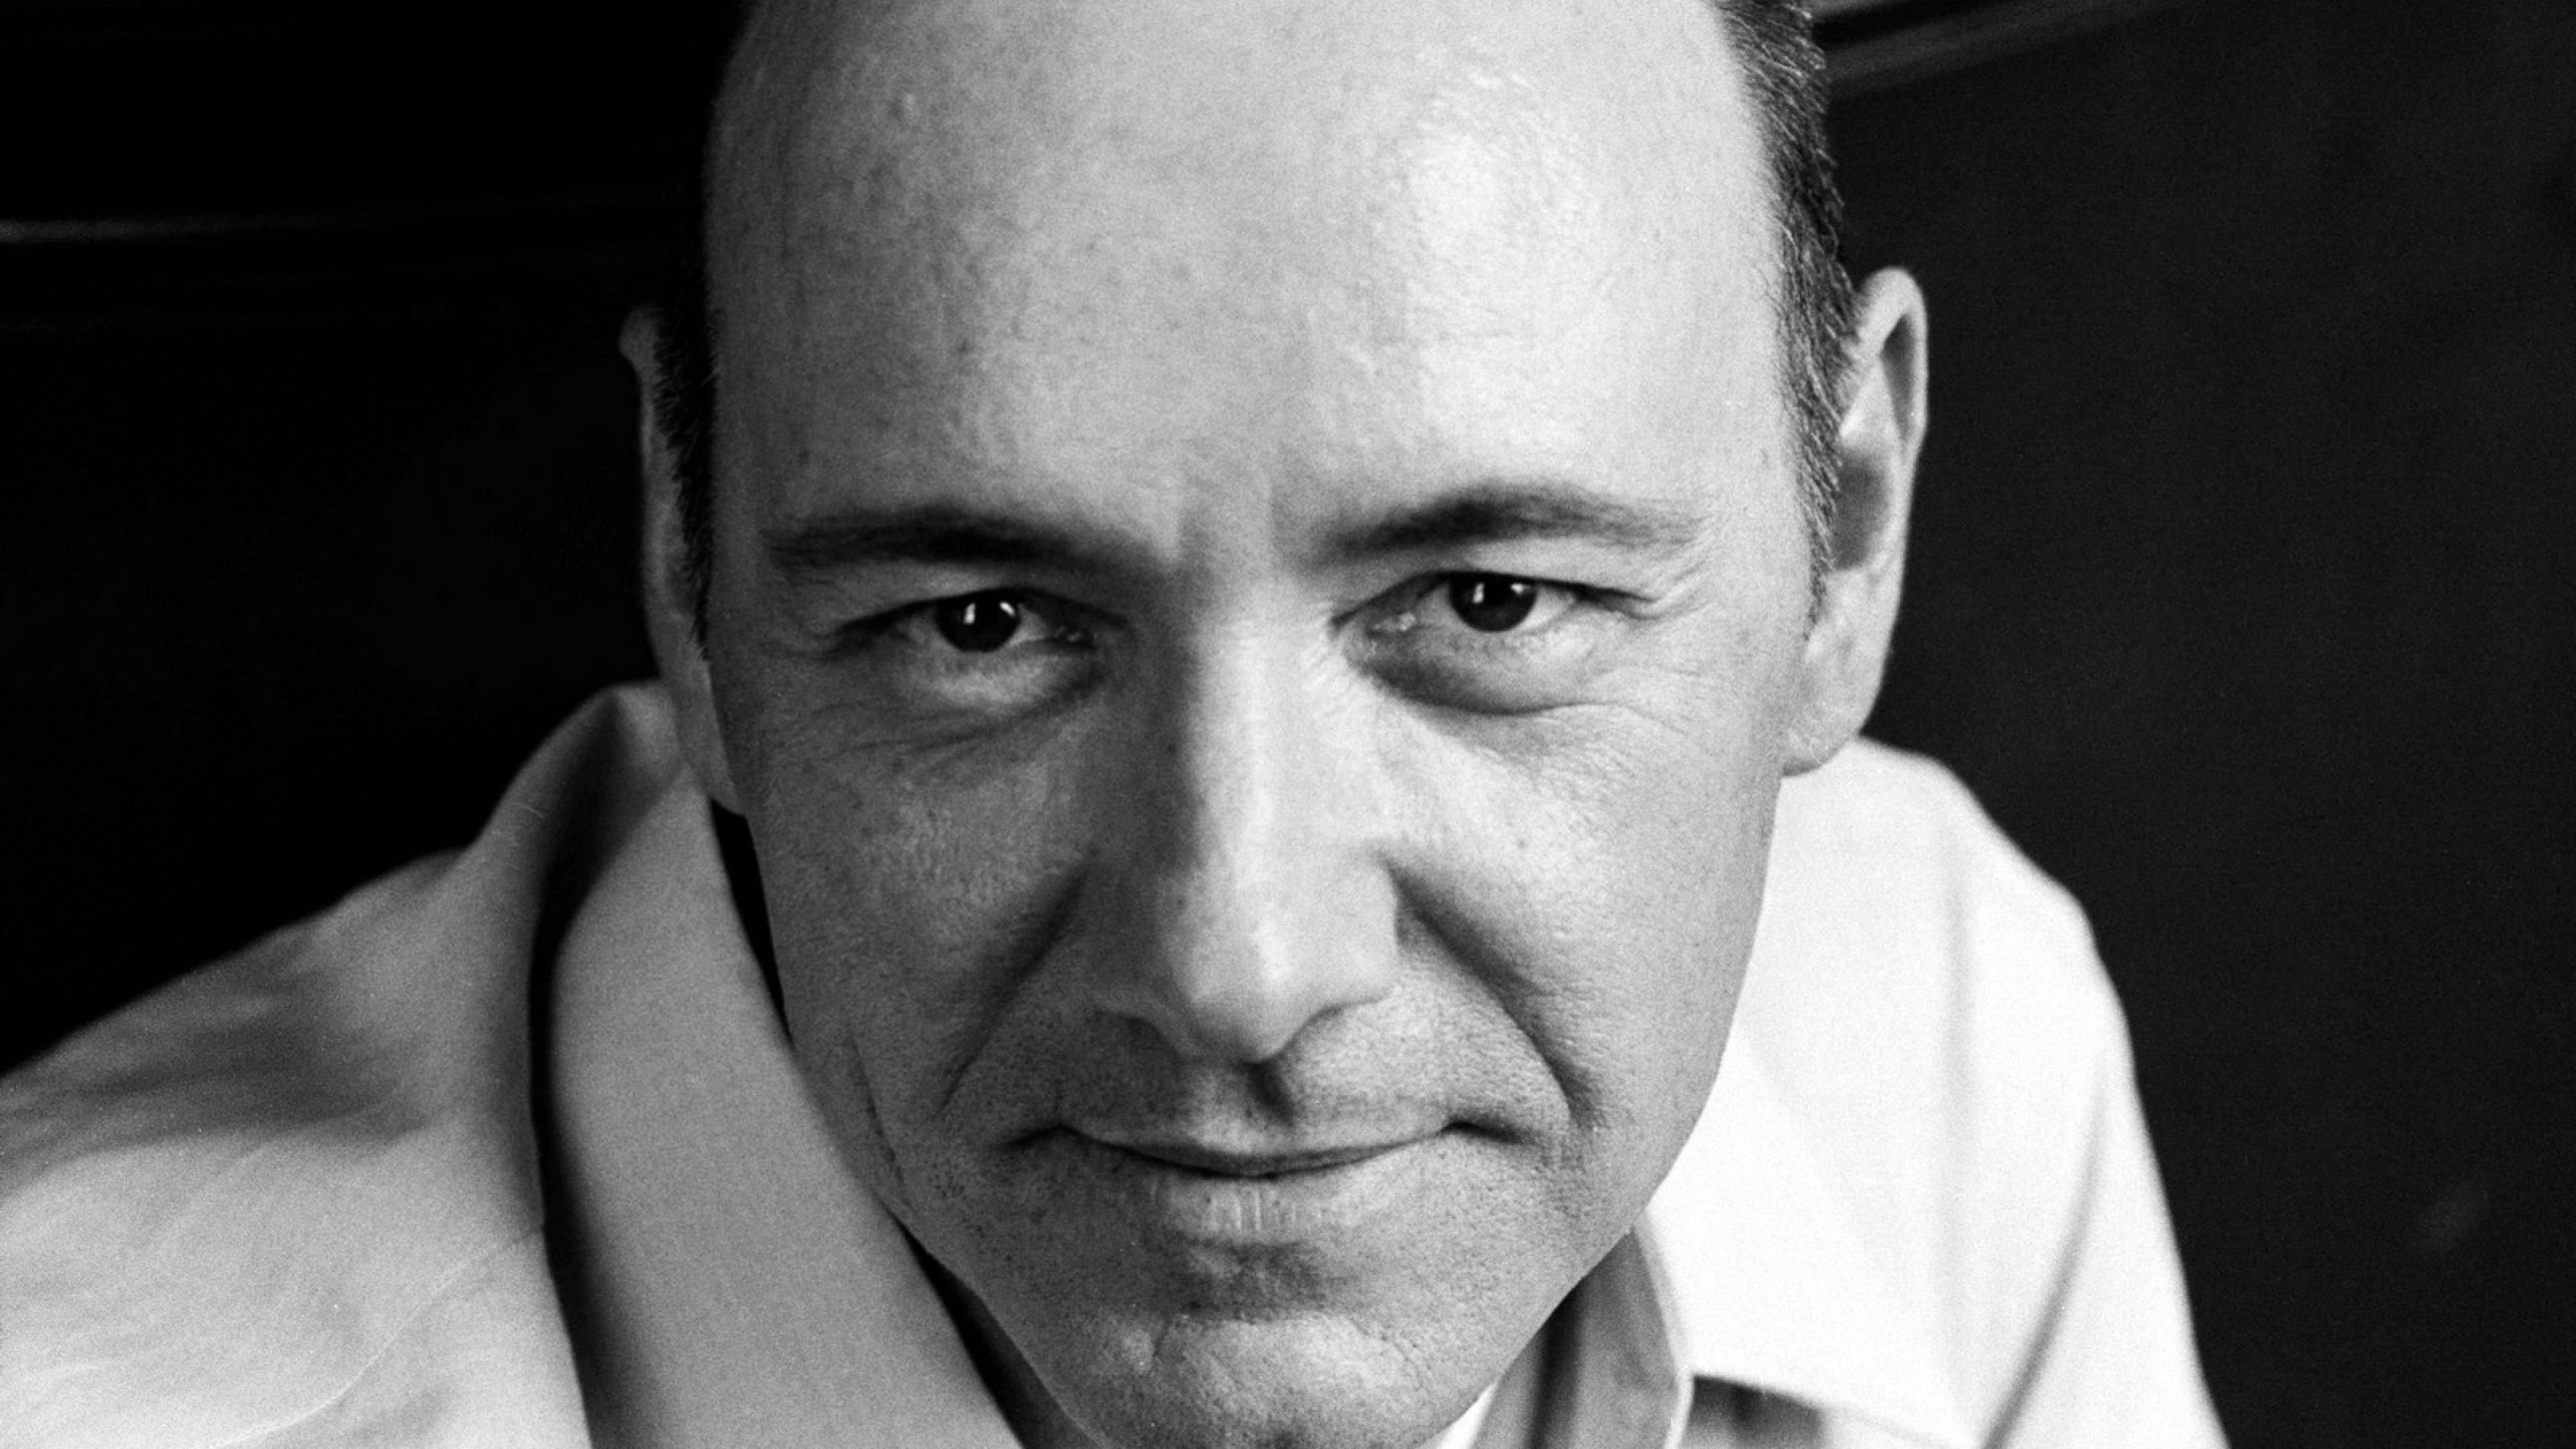 monochrome kevin spacey face wallpaper 57570